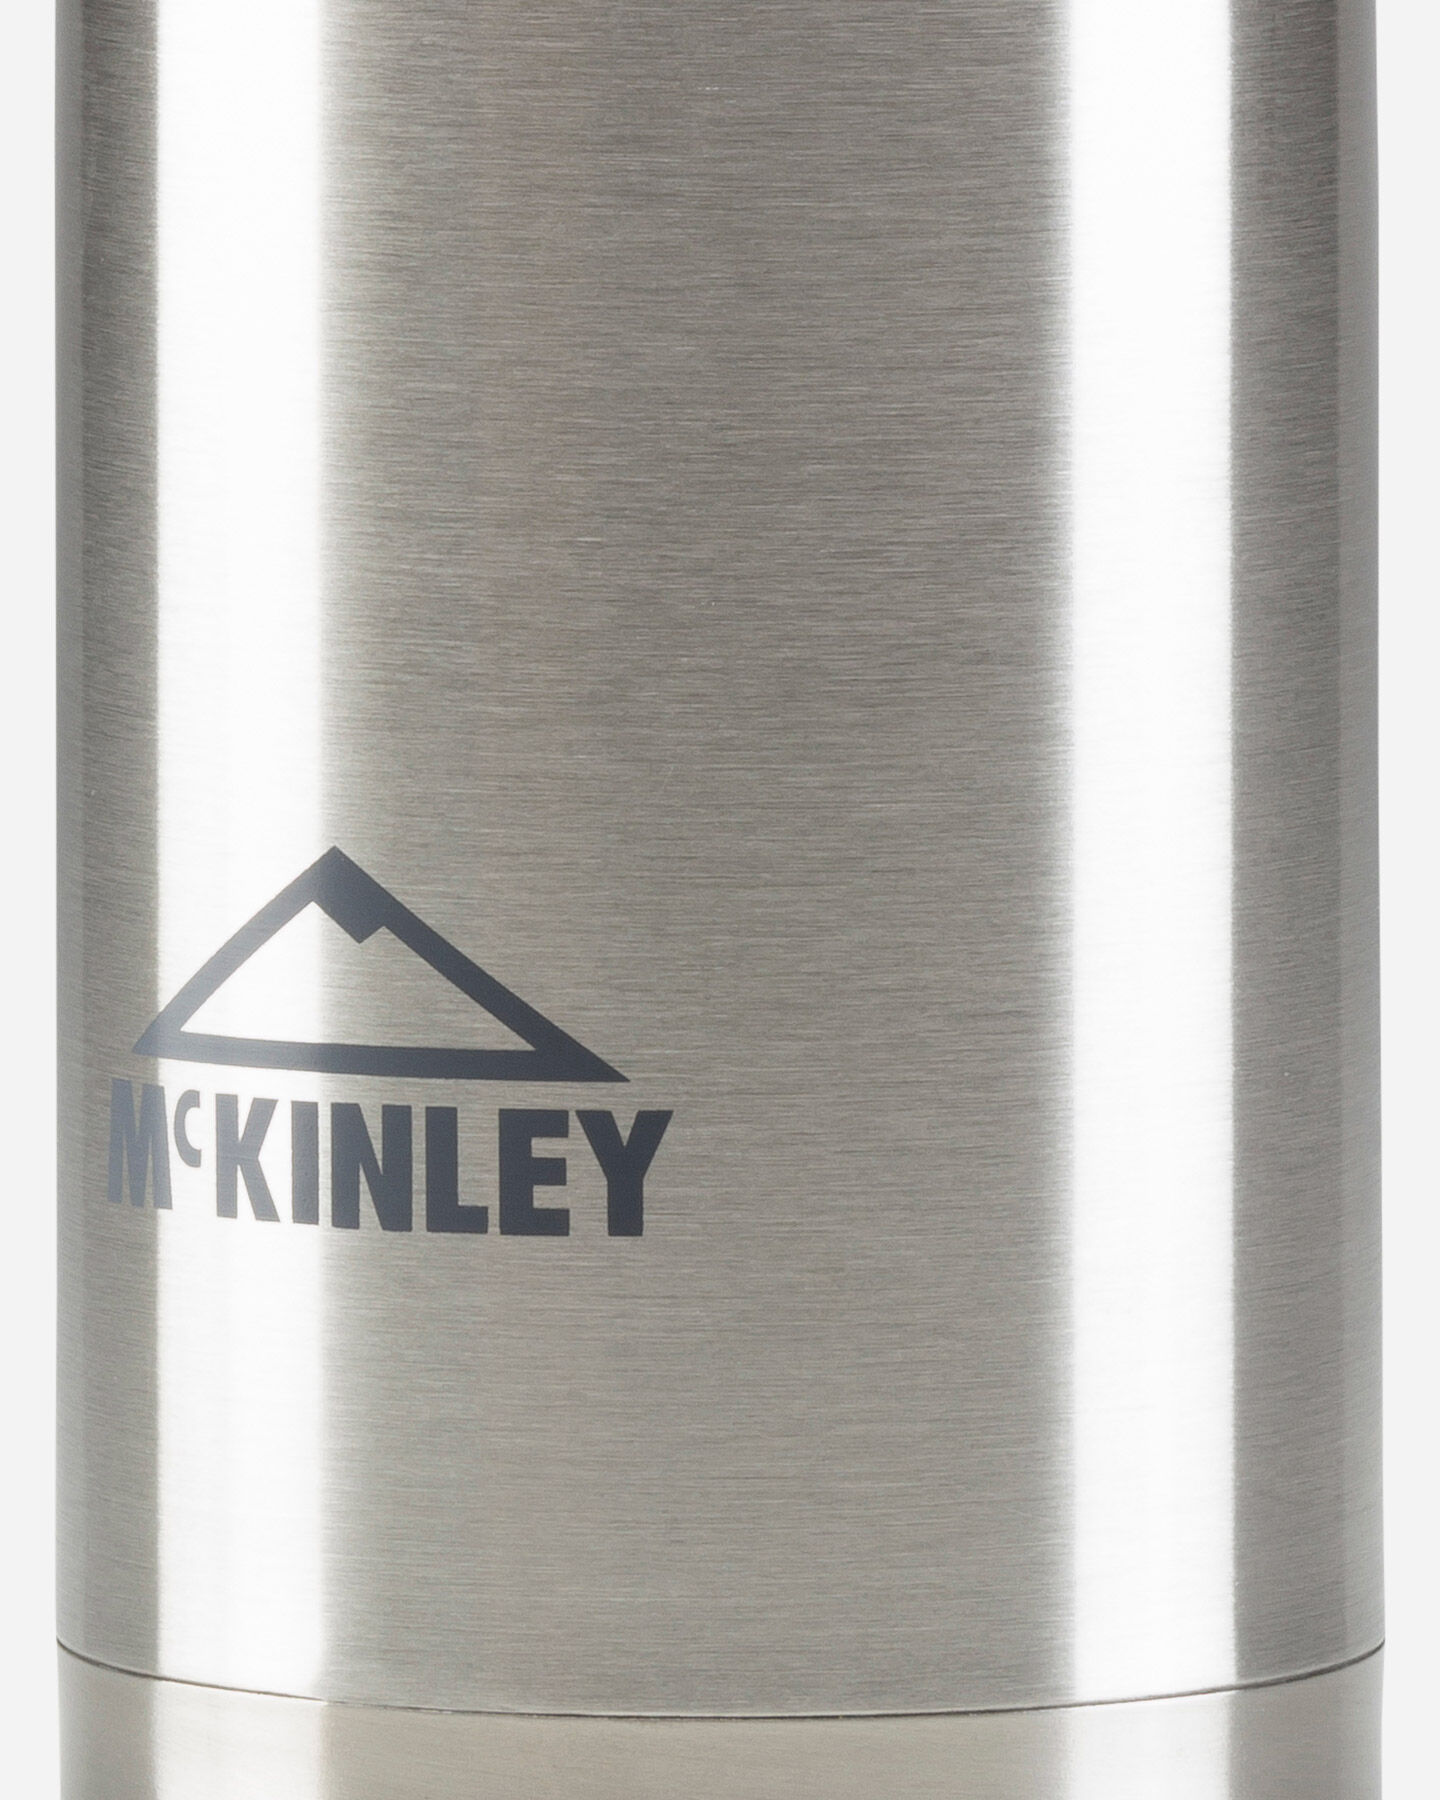 Accessorio camping MCKINLEY STAINLESS STEEL 0,50 S2002802 869 0,50 scatto 1